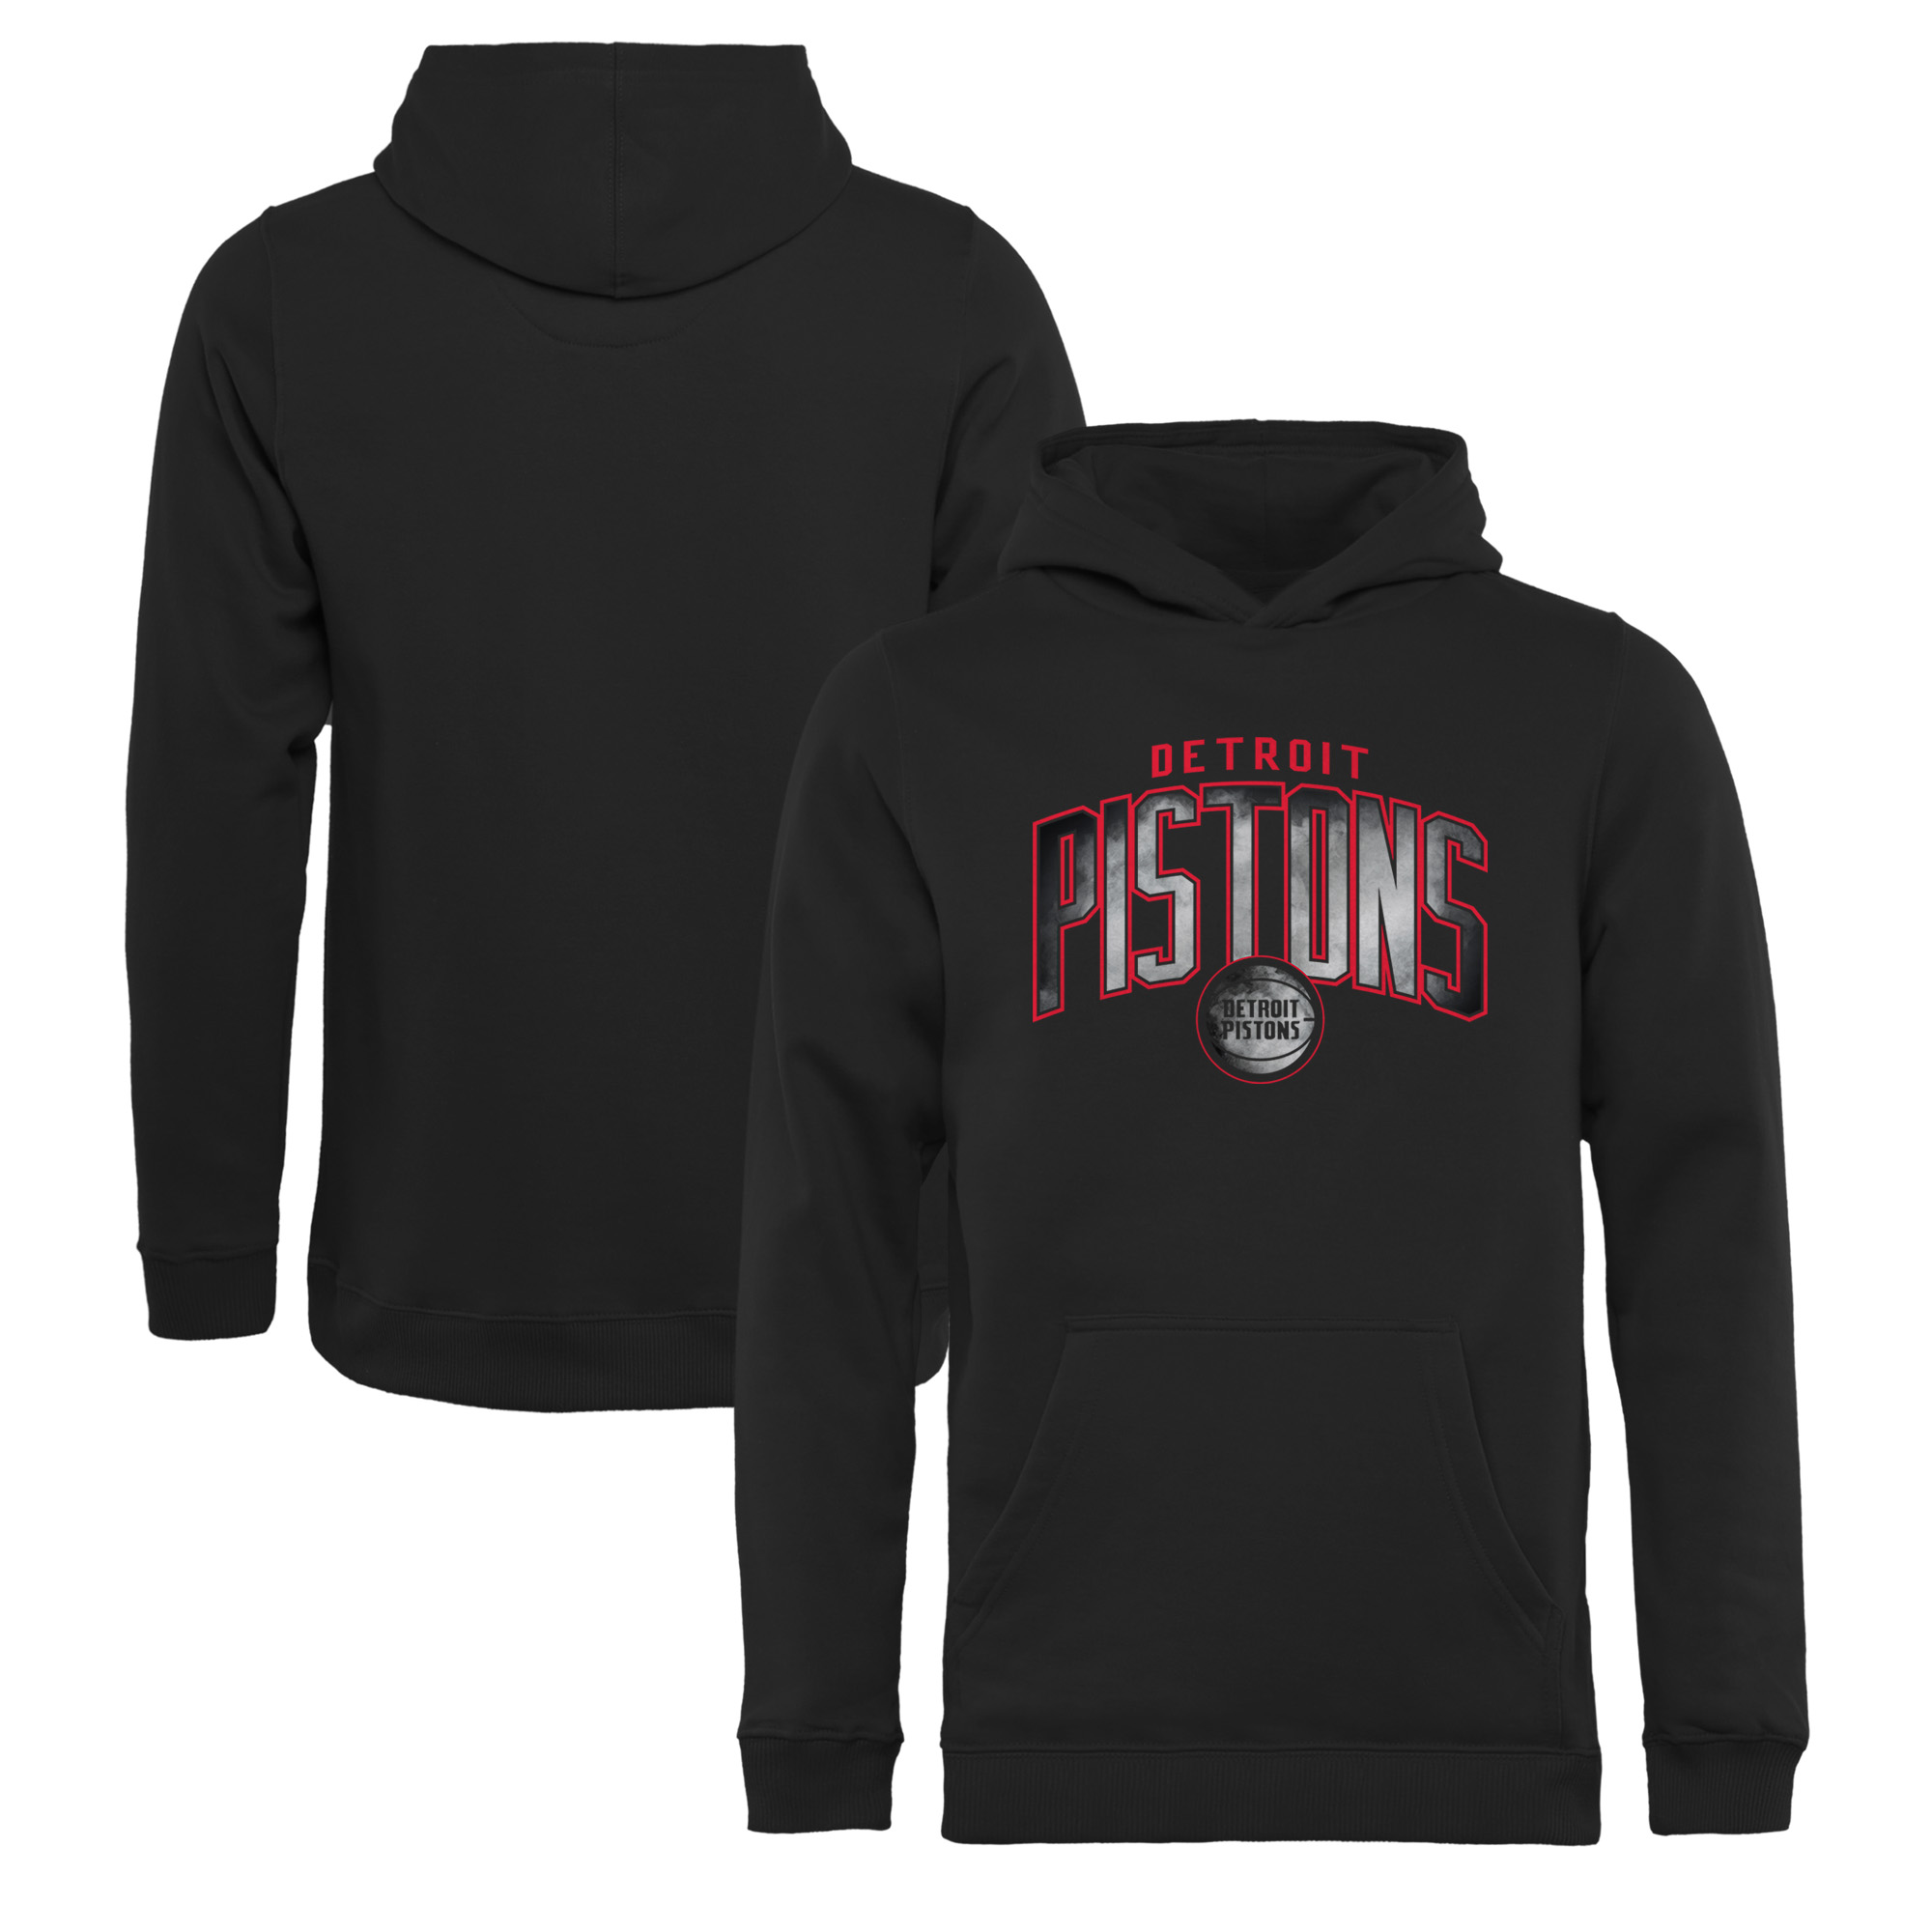 Detroit Pistons Fanatics Branded Youth Arch Smoke Pullover Hoodie - Black